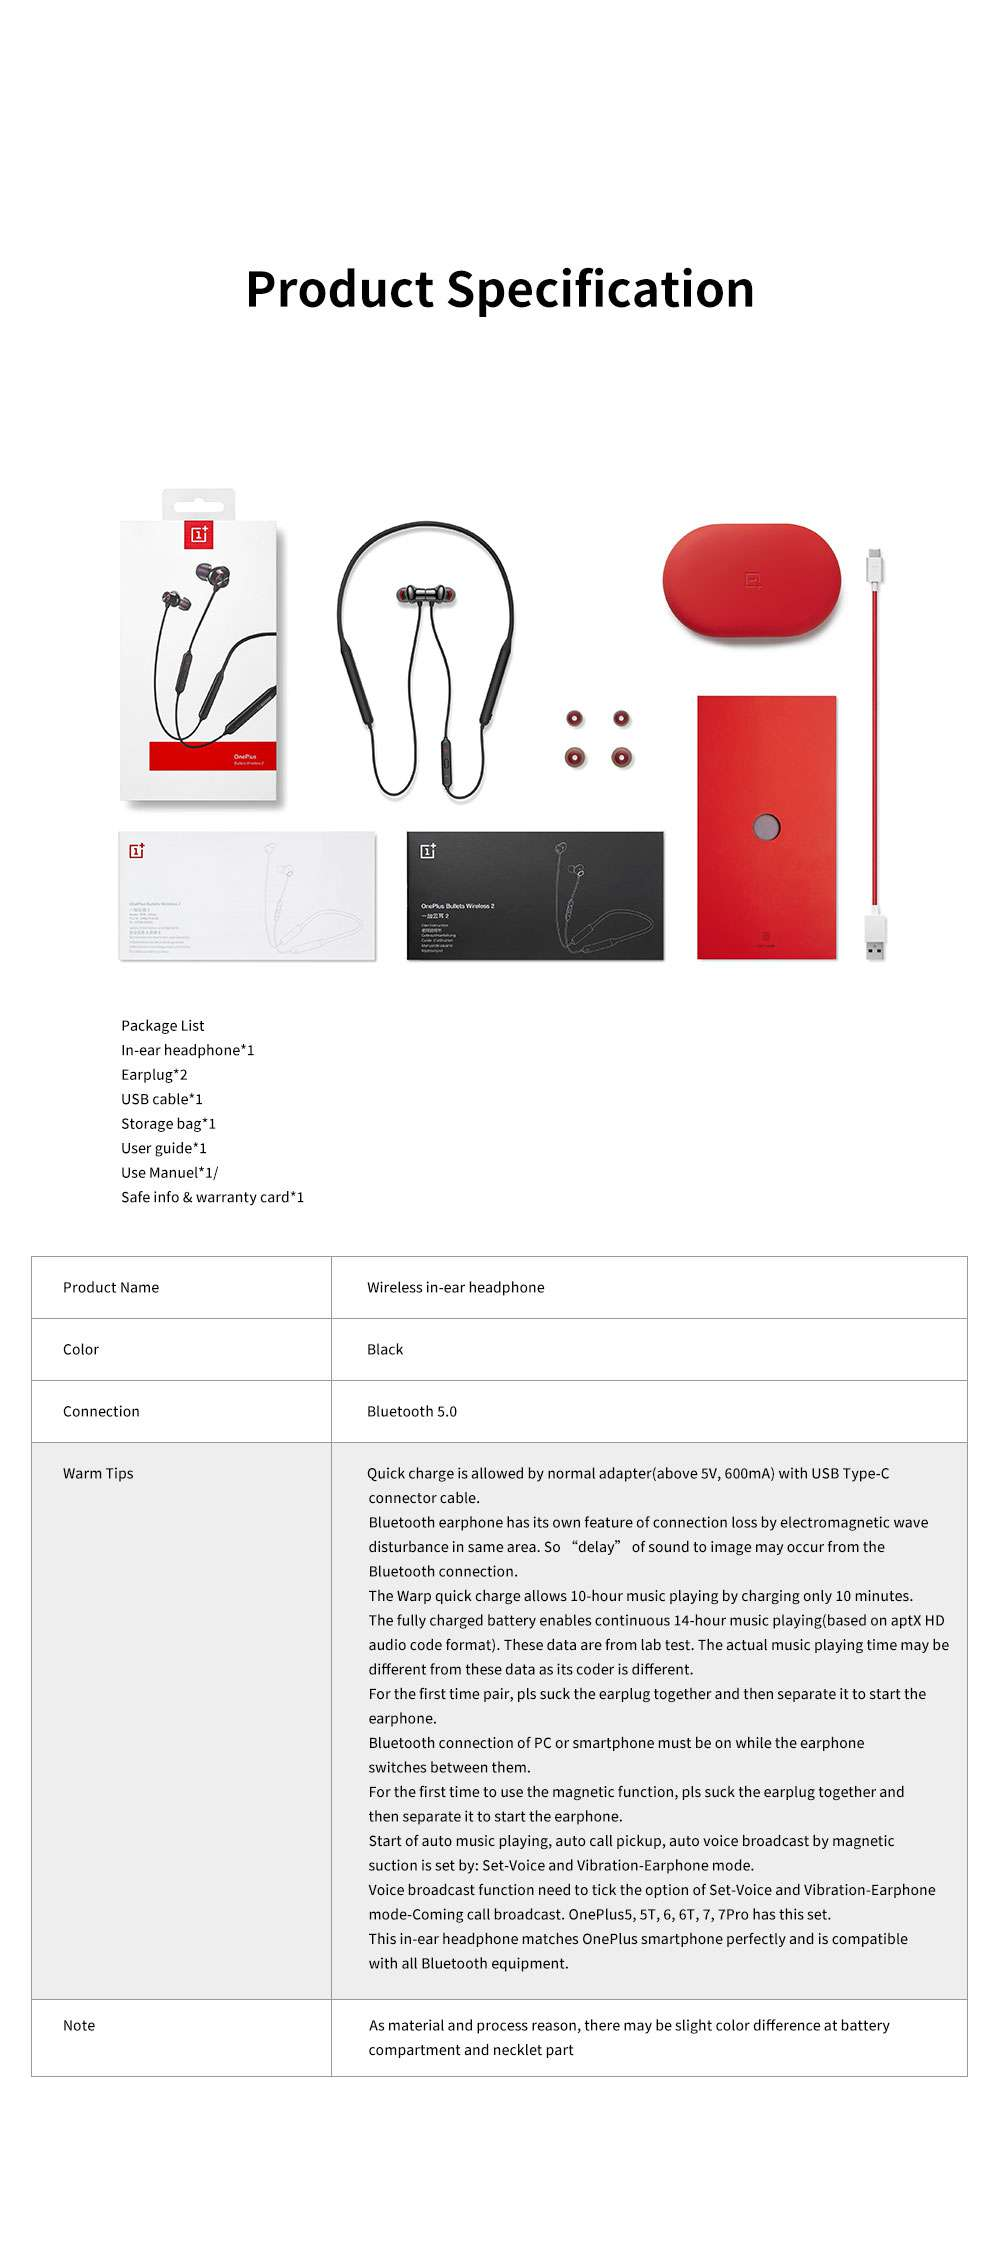 ONEPLUS Bullet Wireless 2 In-ear Headphone for Music Listening Phone Calling Warp Charge and Quick Connection Bluetooth Earphone 11